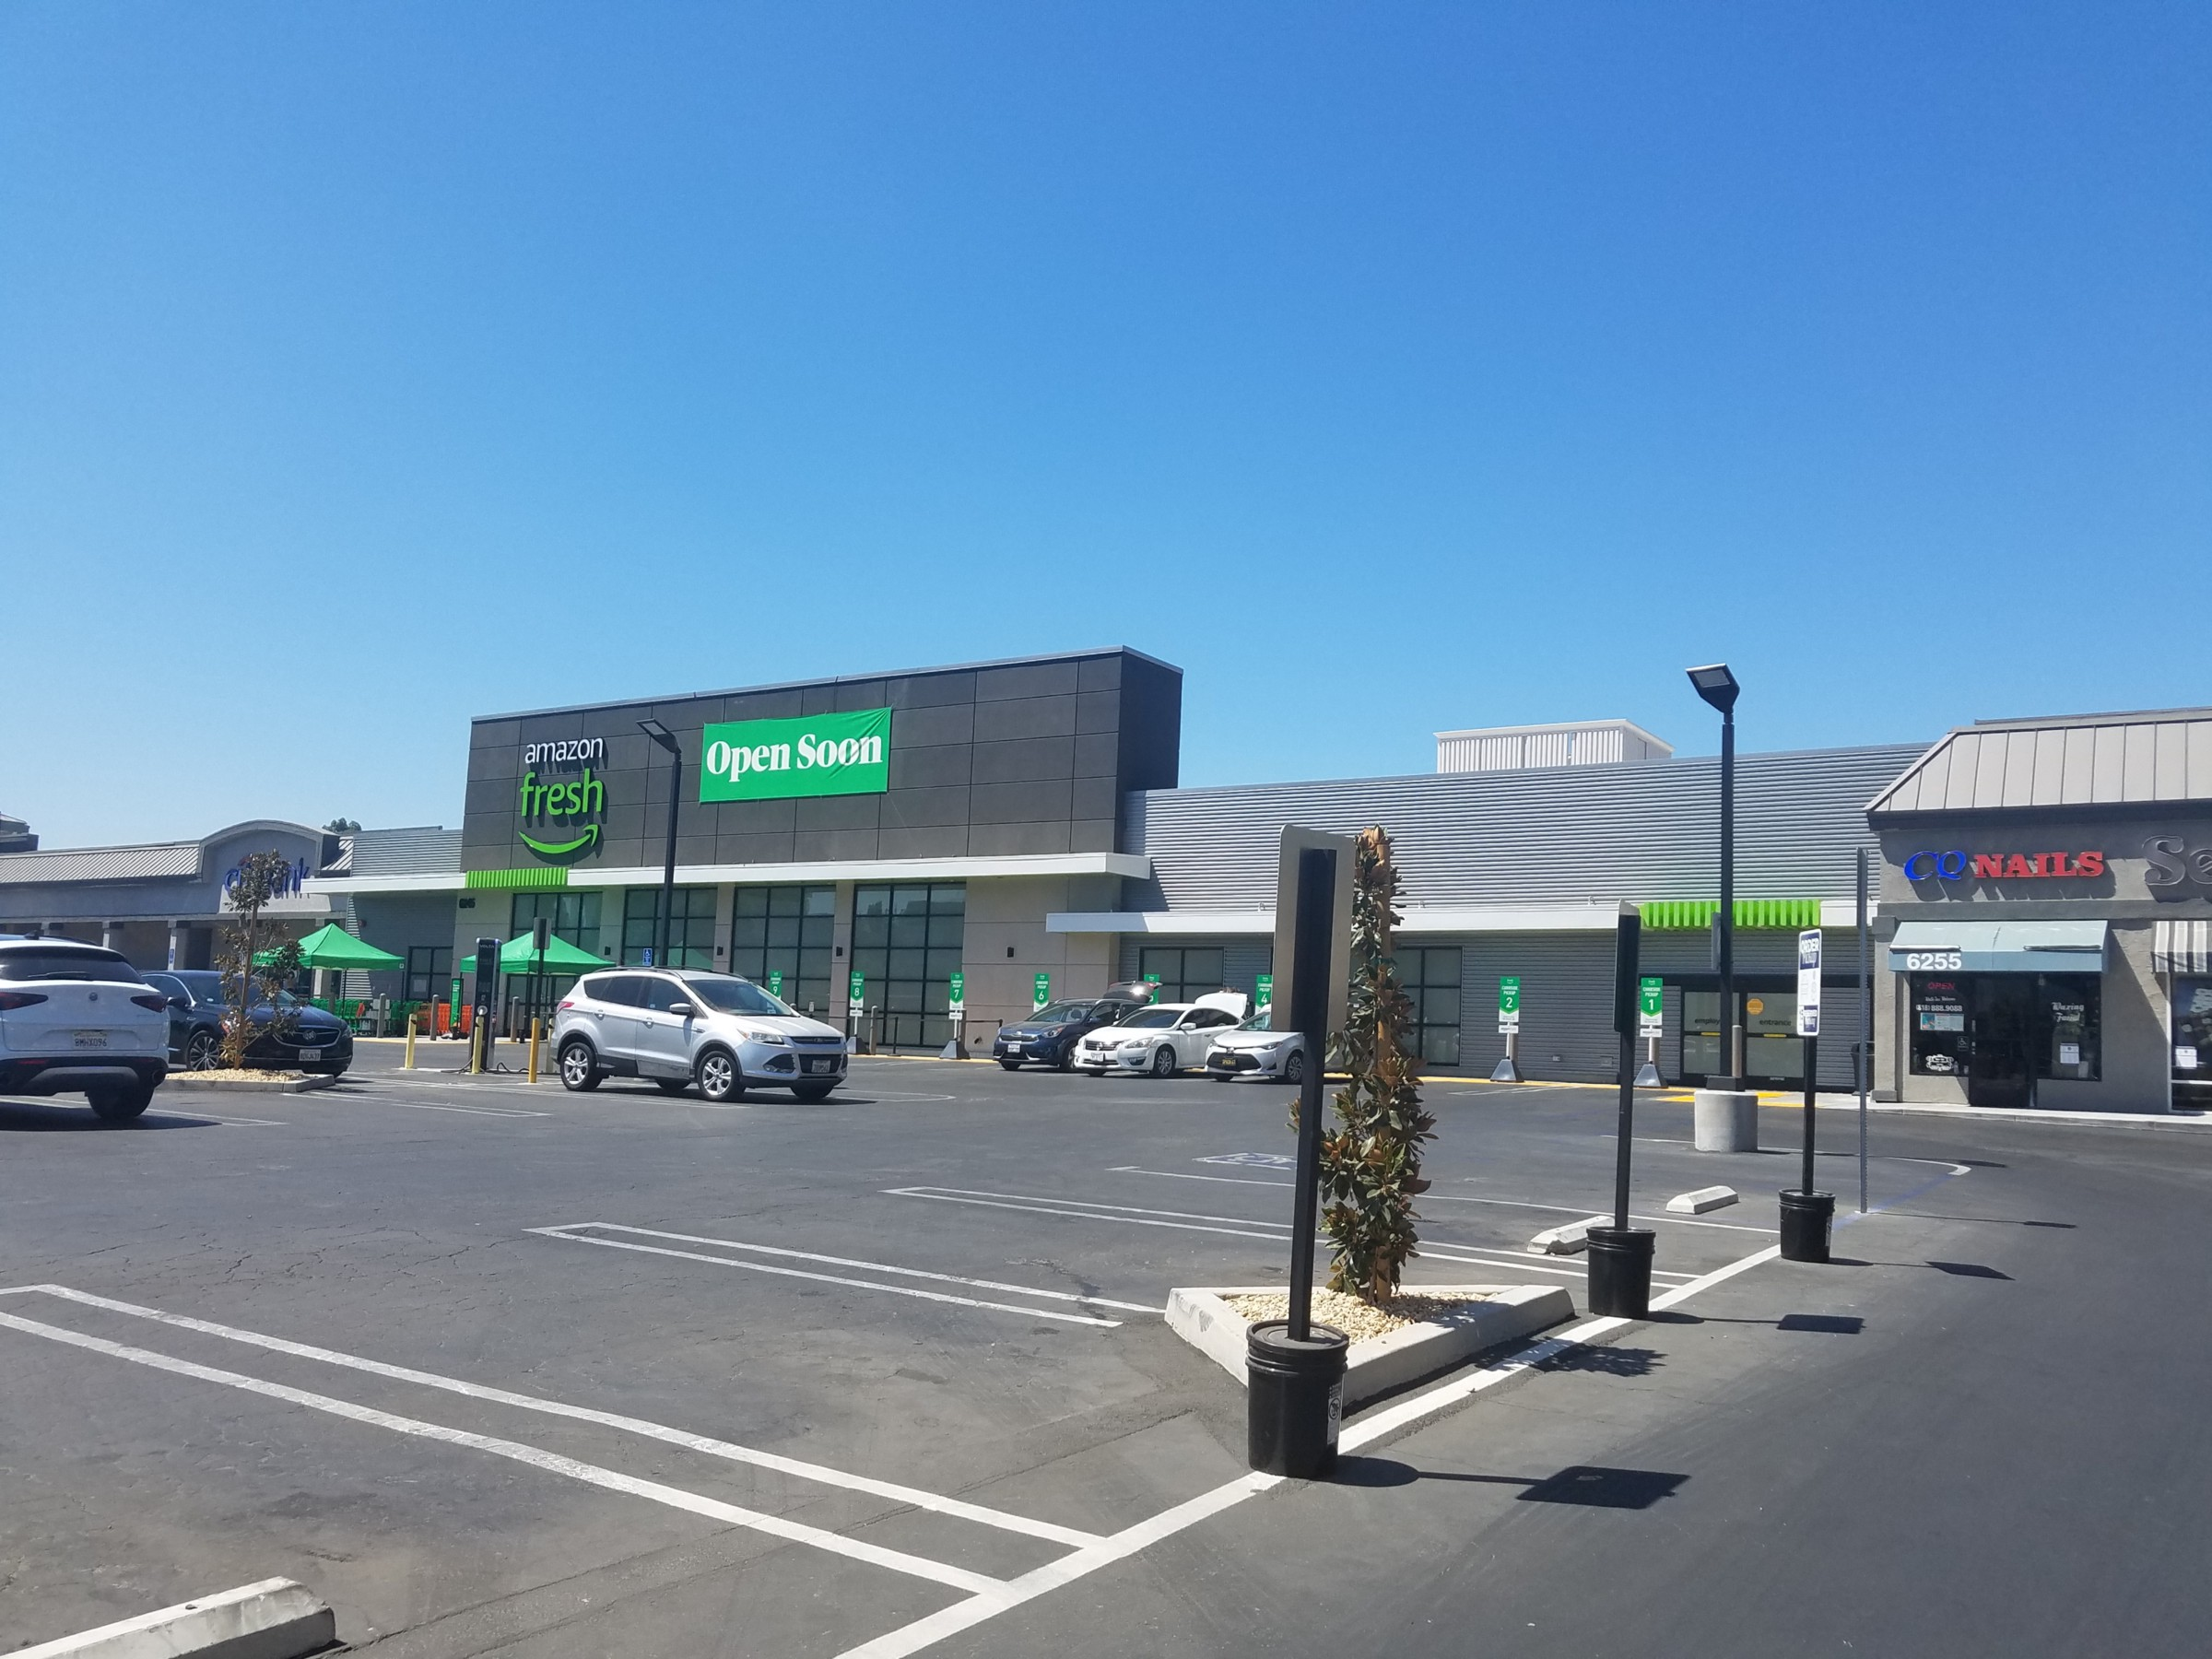 Amazon Fresh Stores, Built by Engineers?